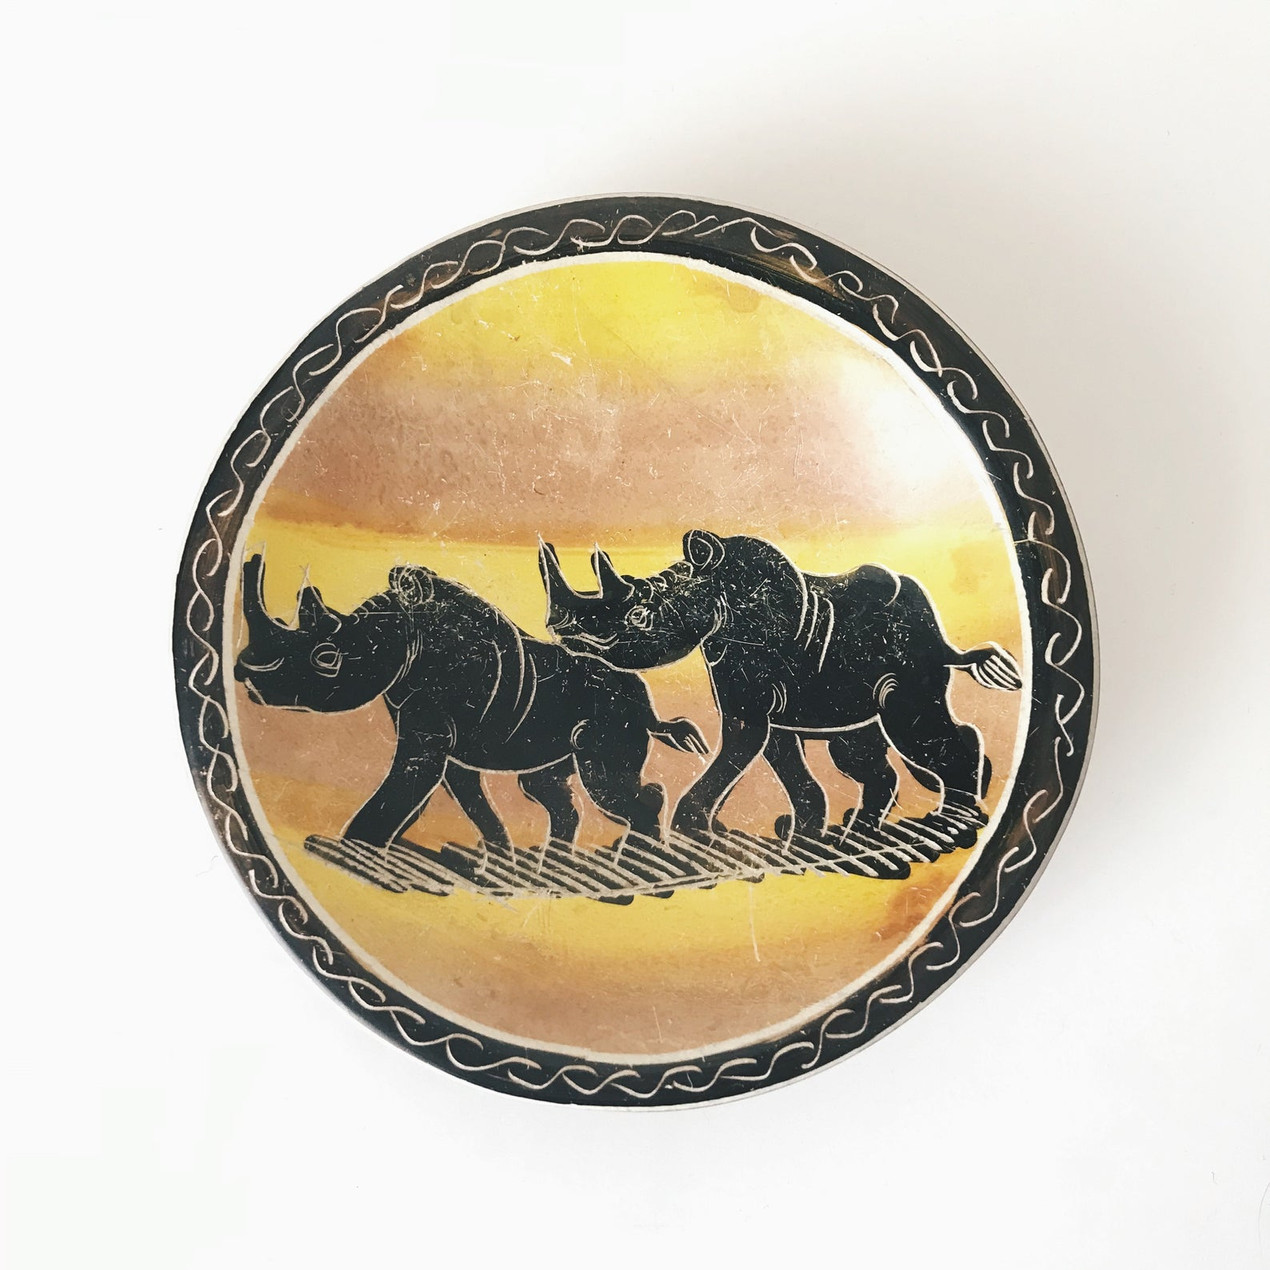 Soapstone ring dish from wild home online